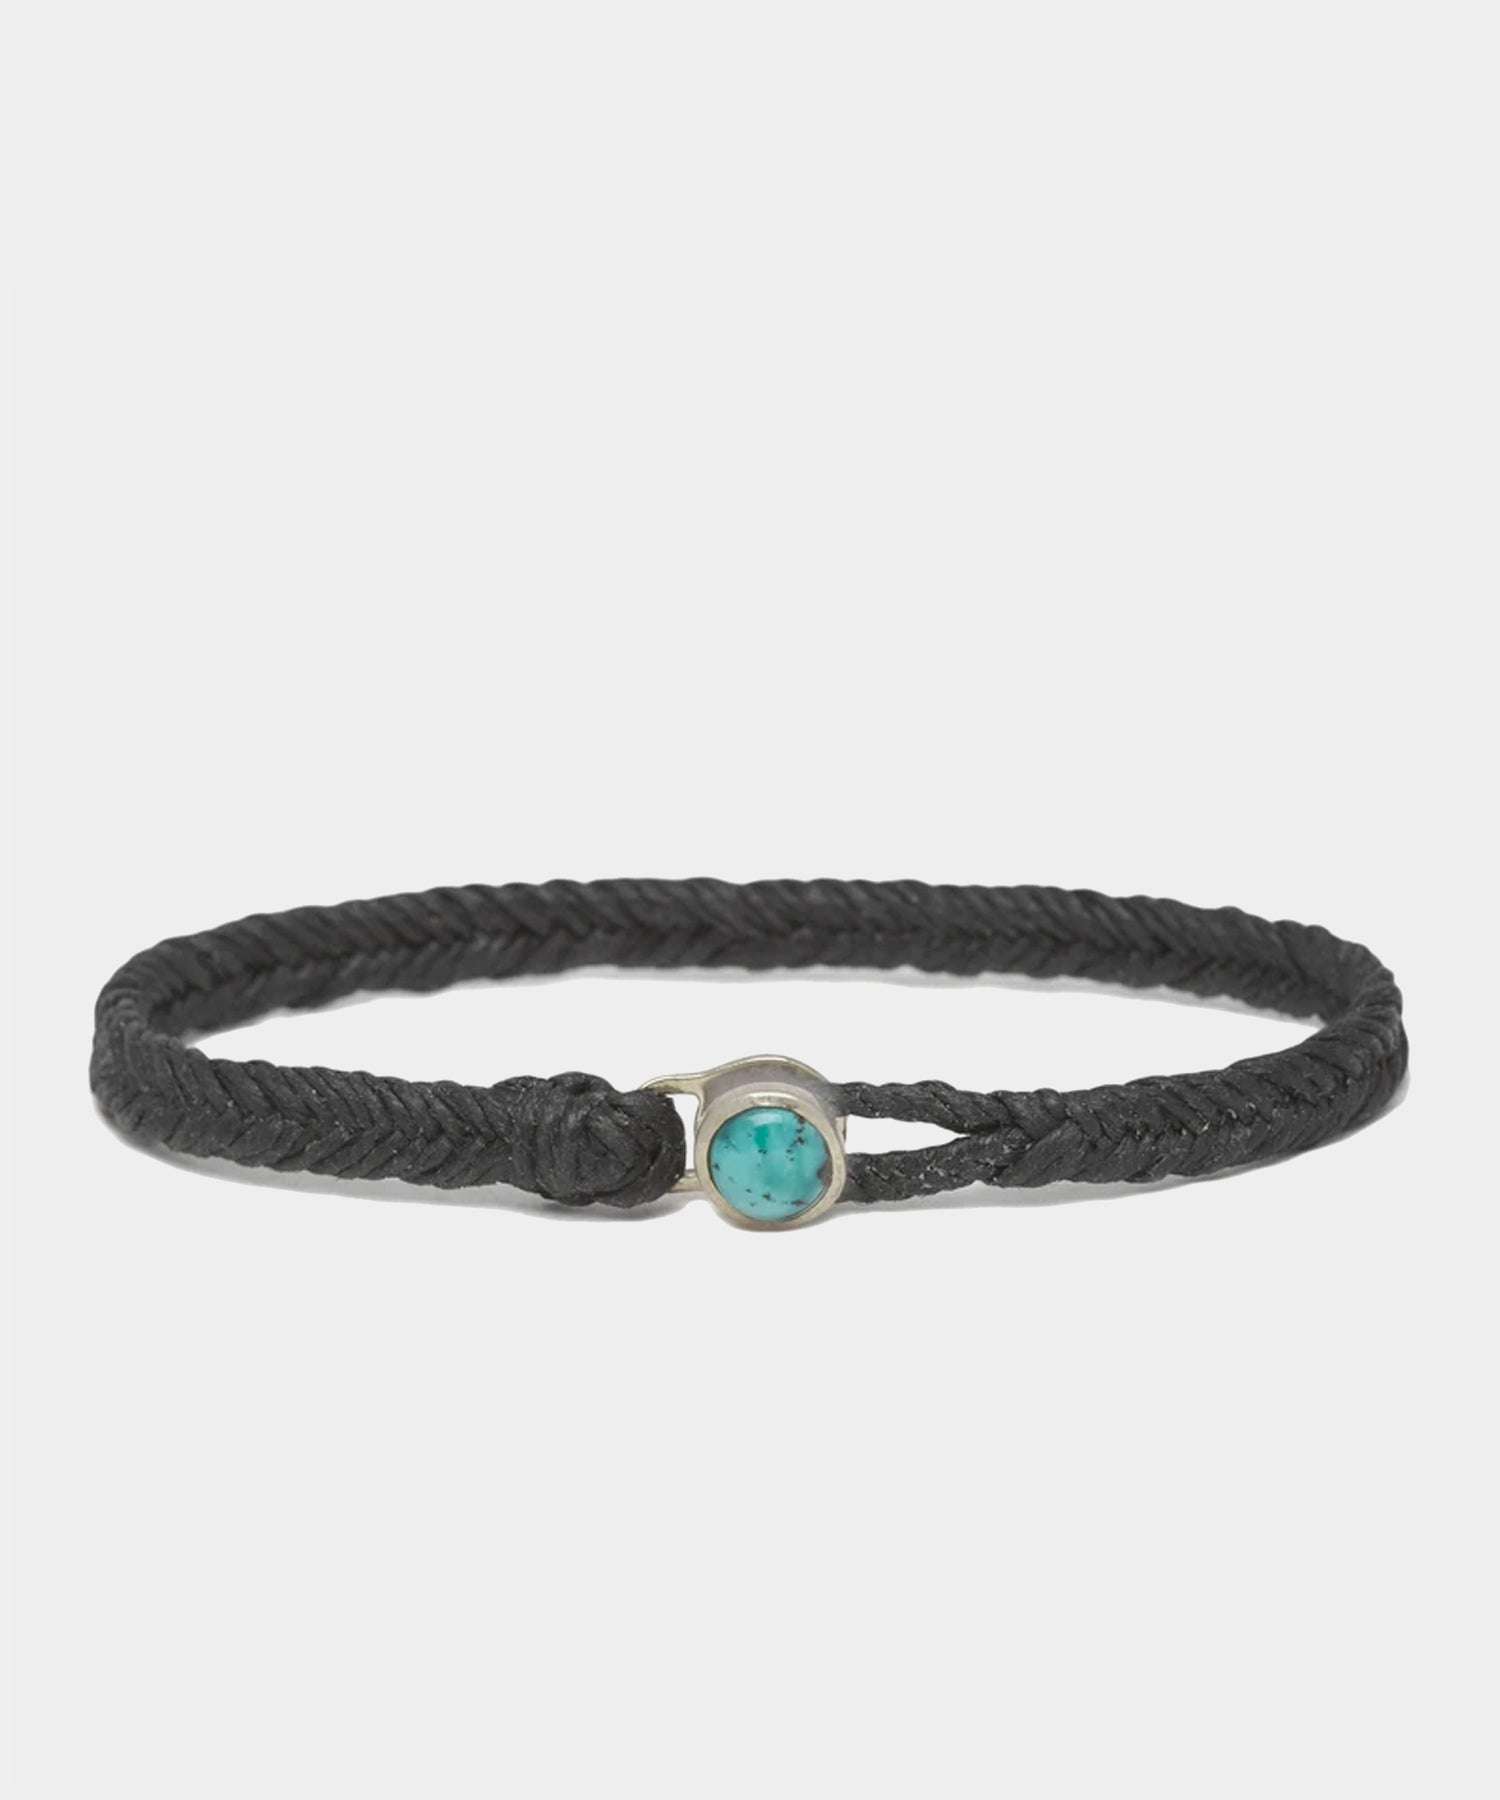 Scoshsa Classic Fishtail Bracelet with Turquoise Button in Black